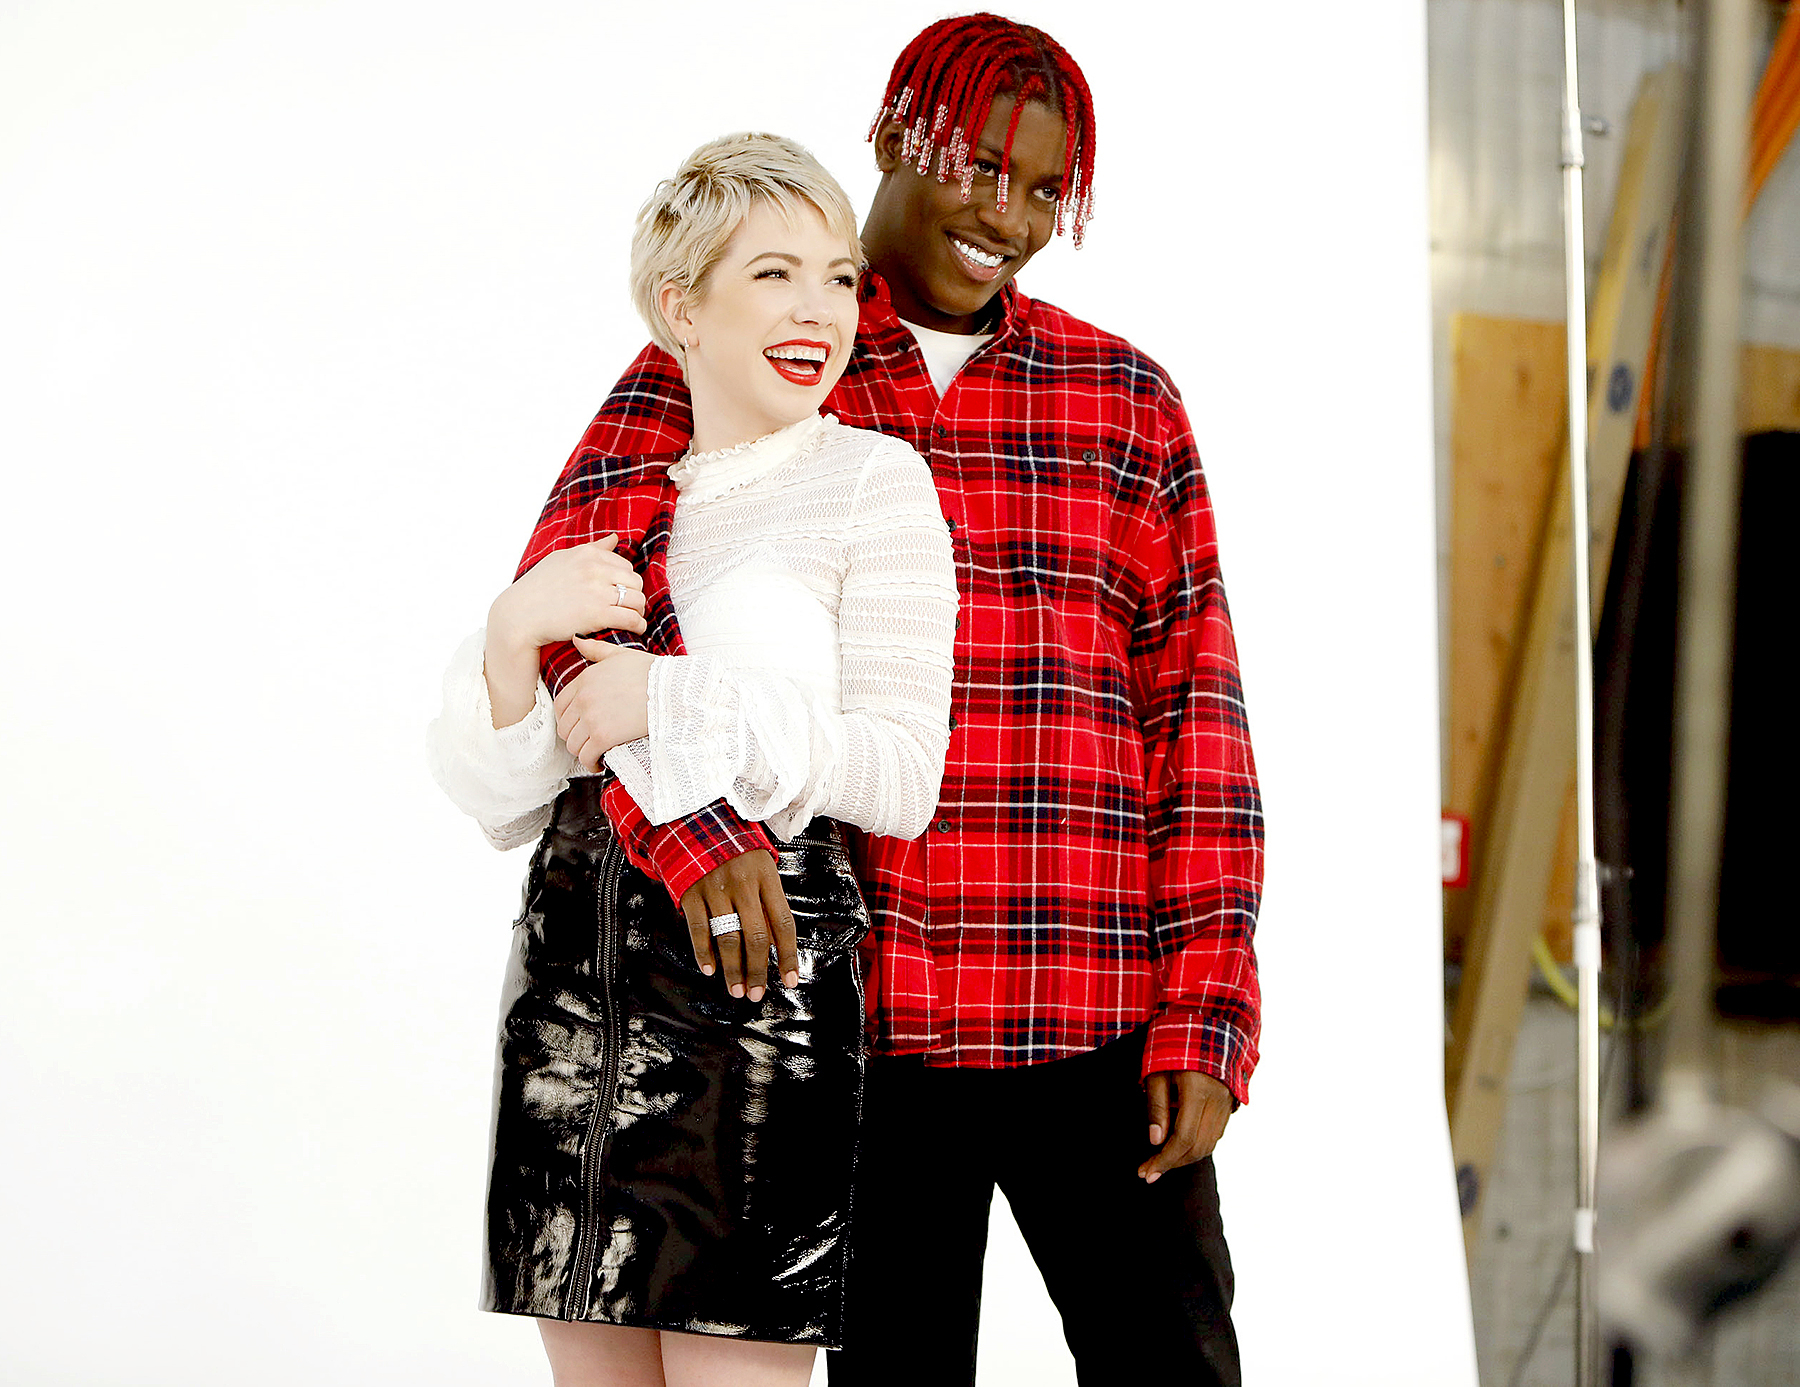 Carly Rae Jepsen Lil Yachty S